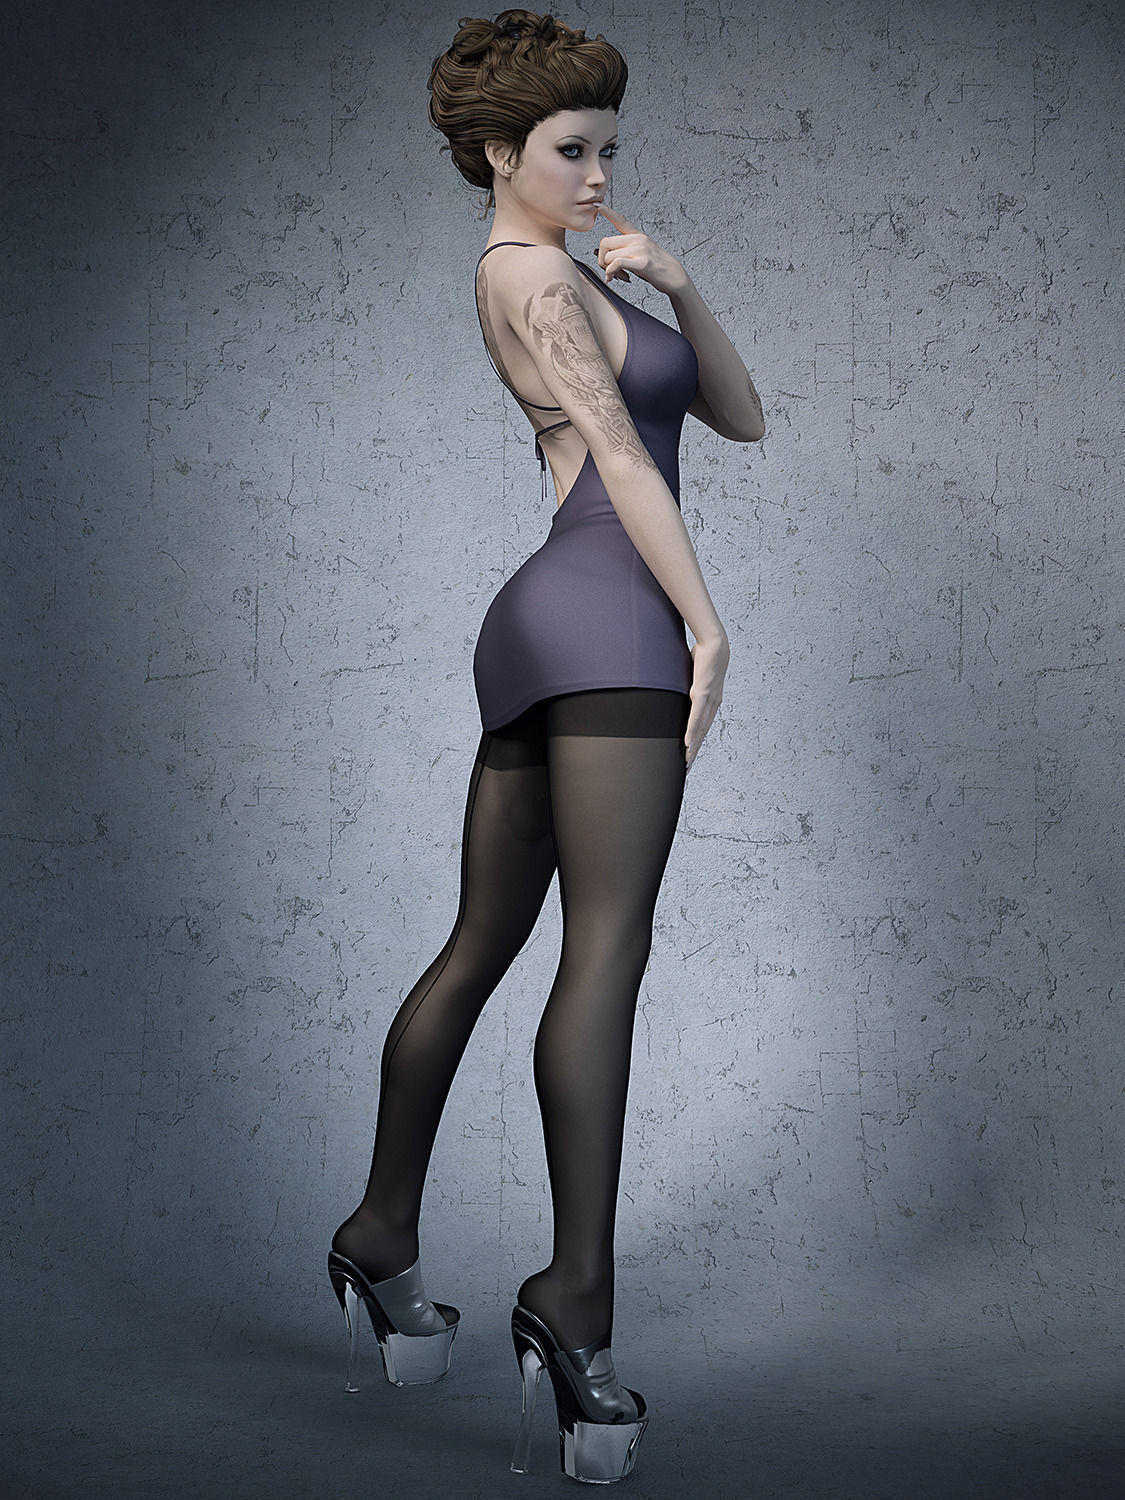 Women in stockings and high heels